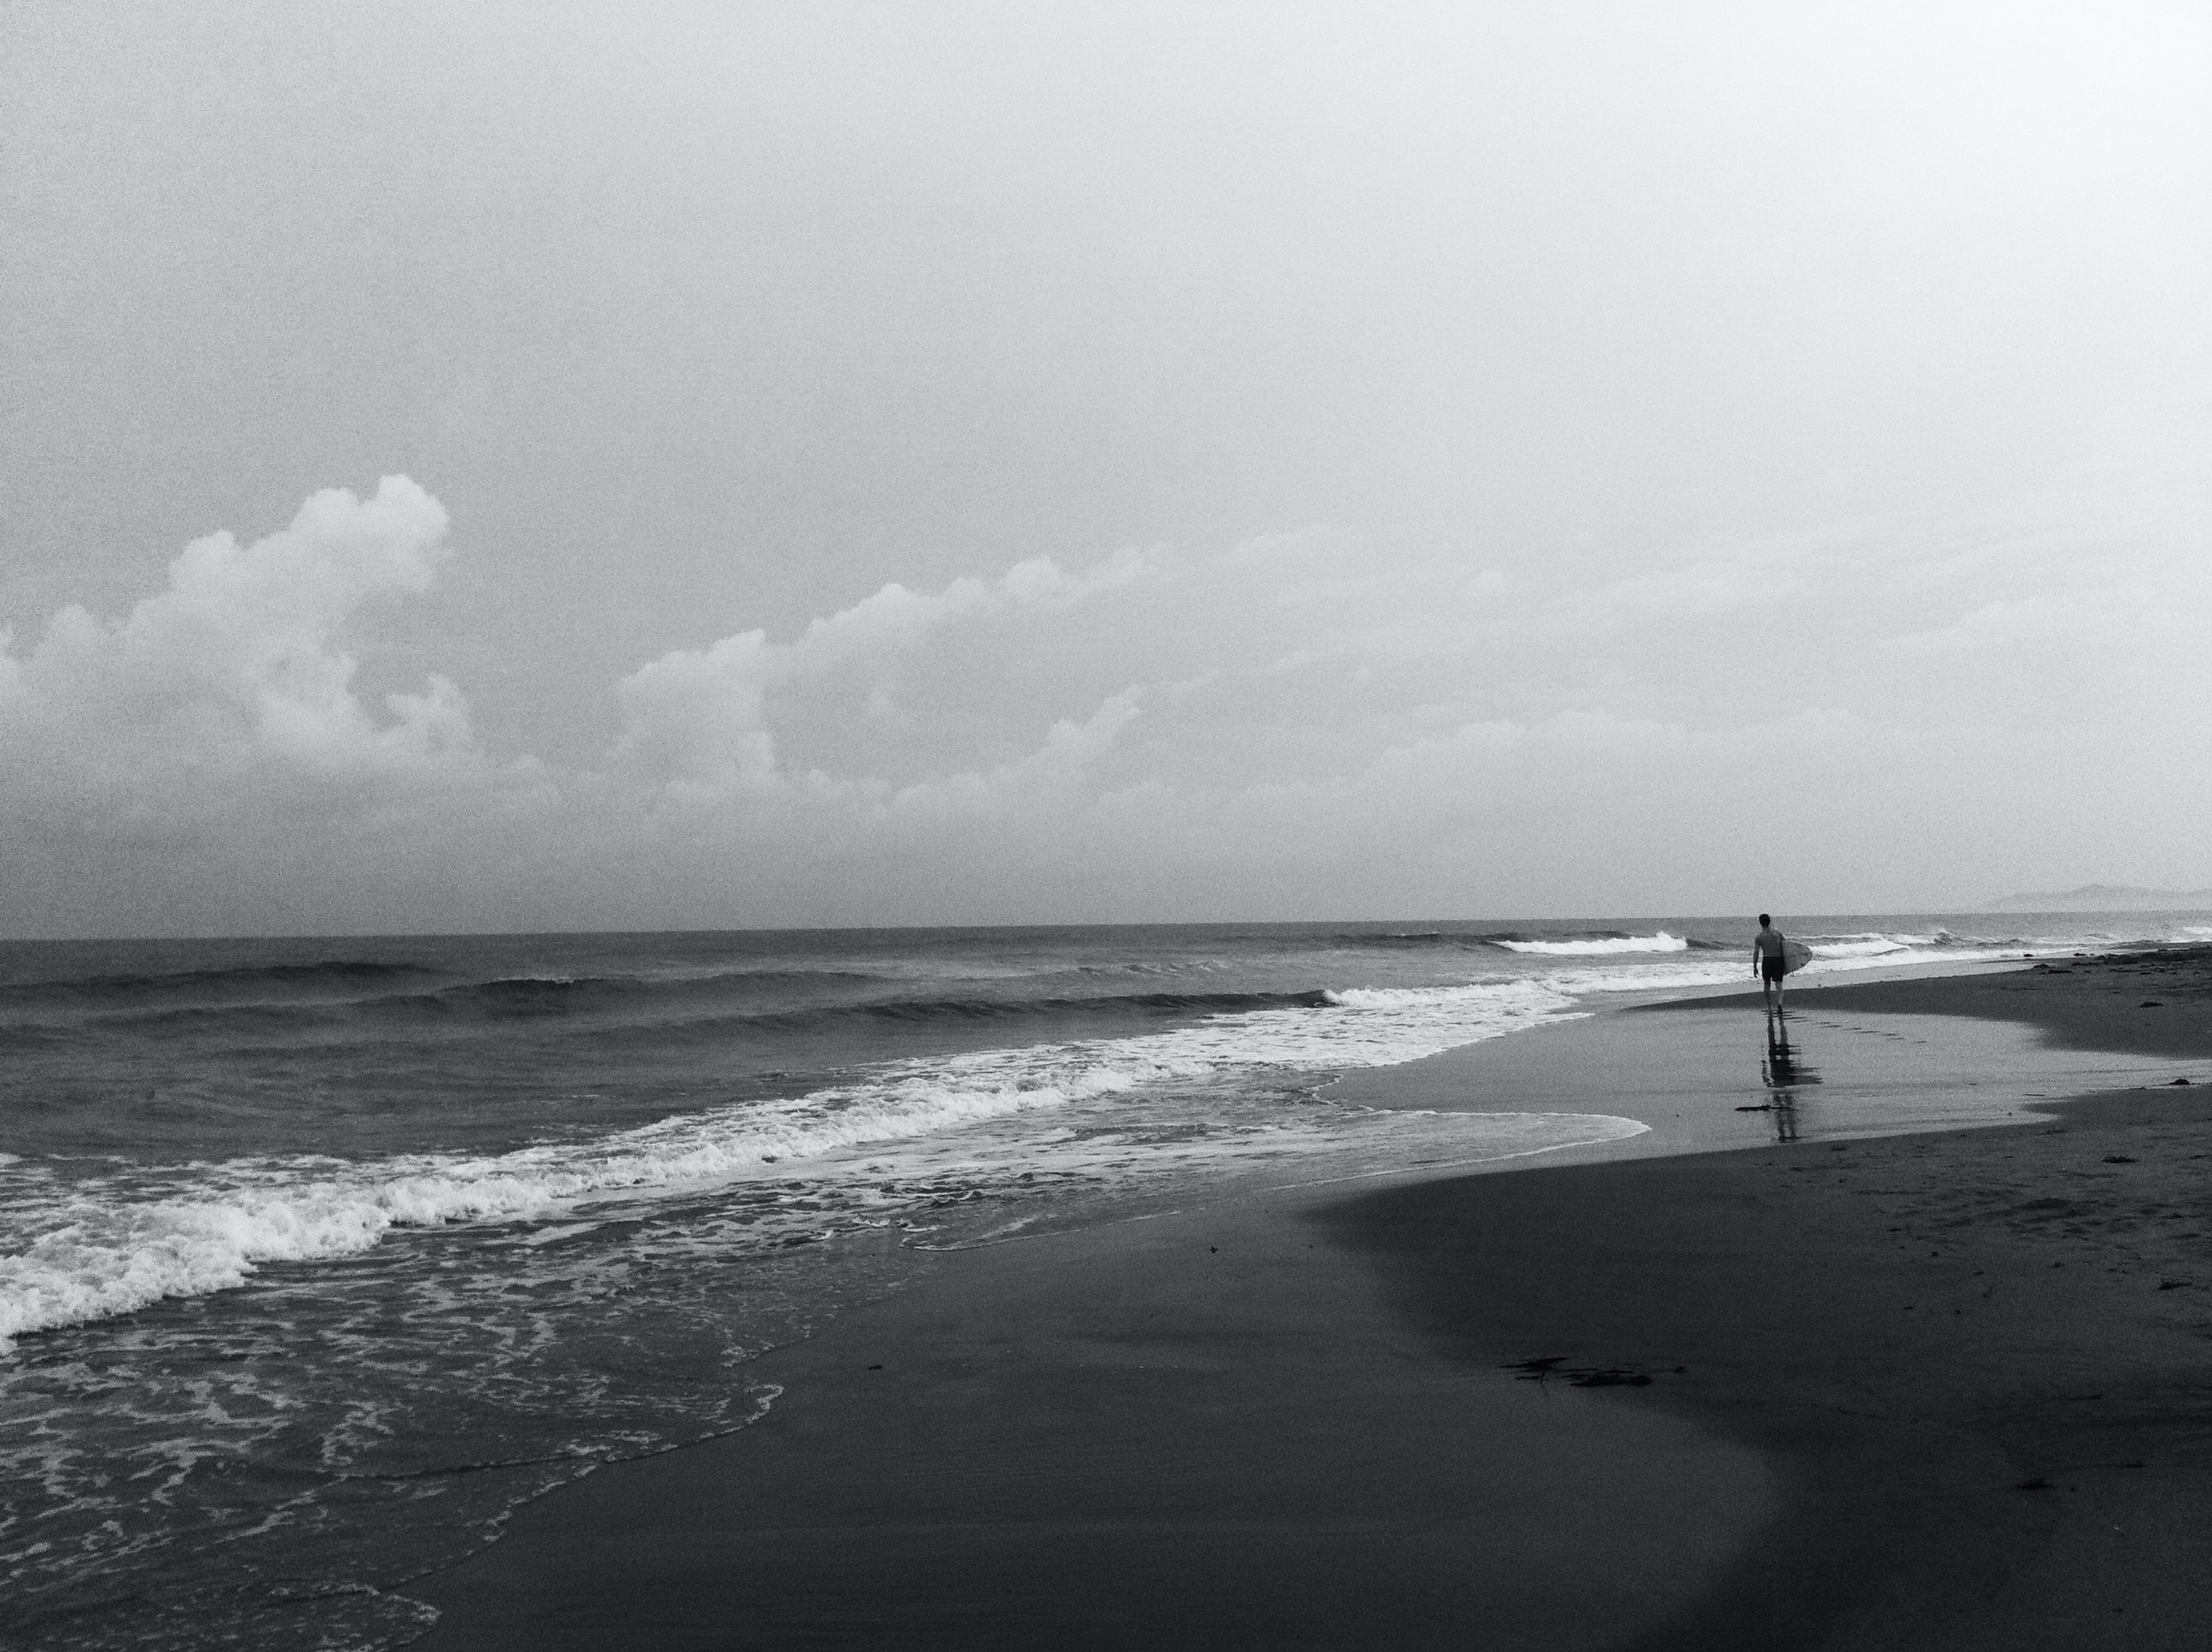 grayscale photography of person standing on seashore